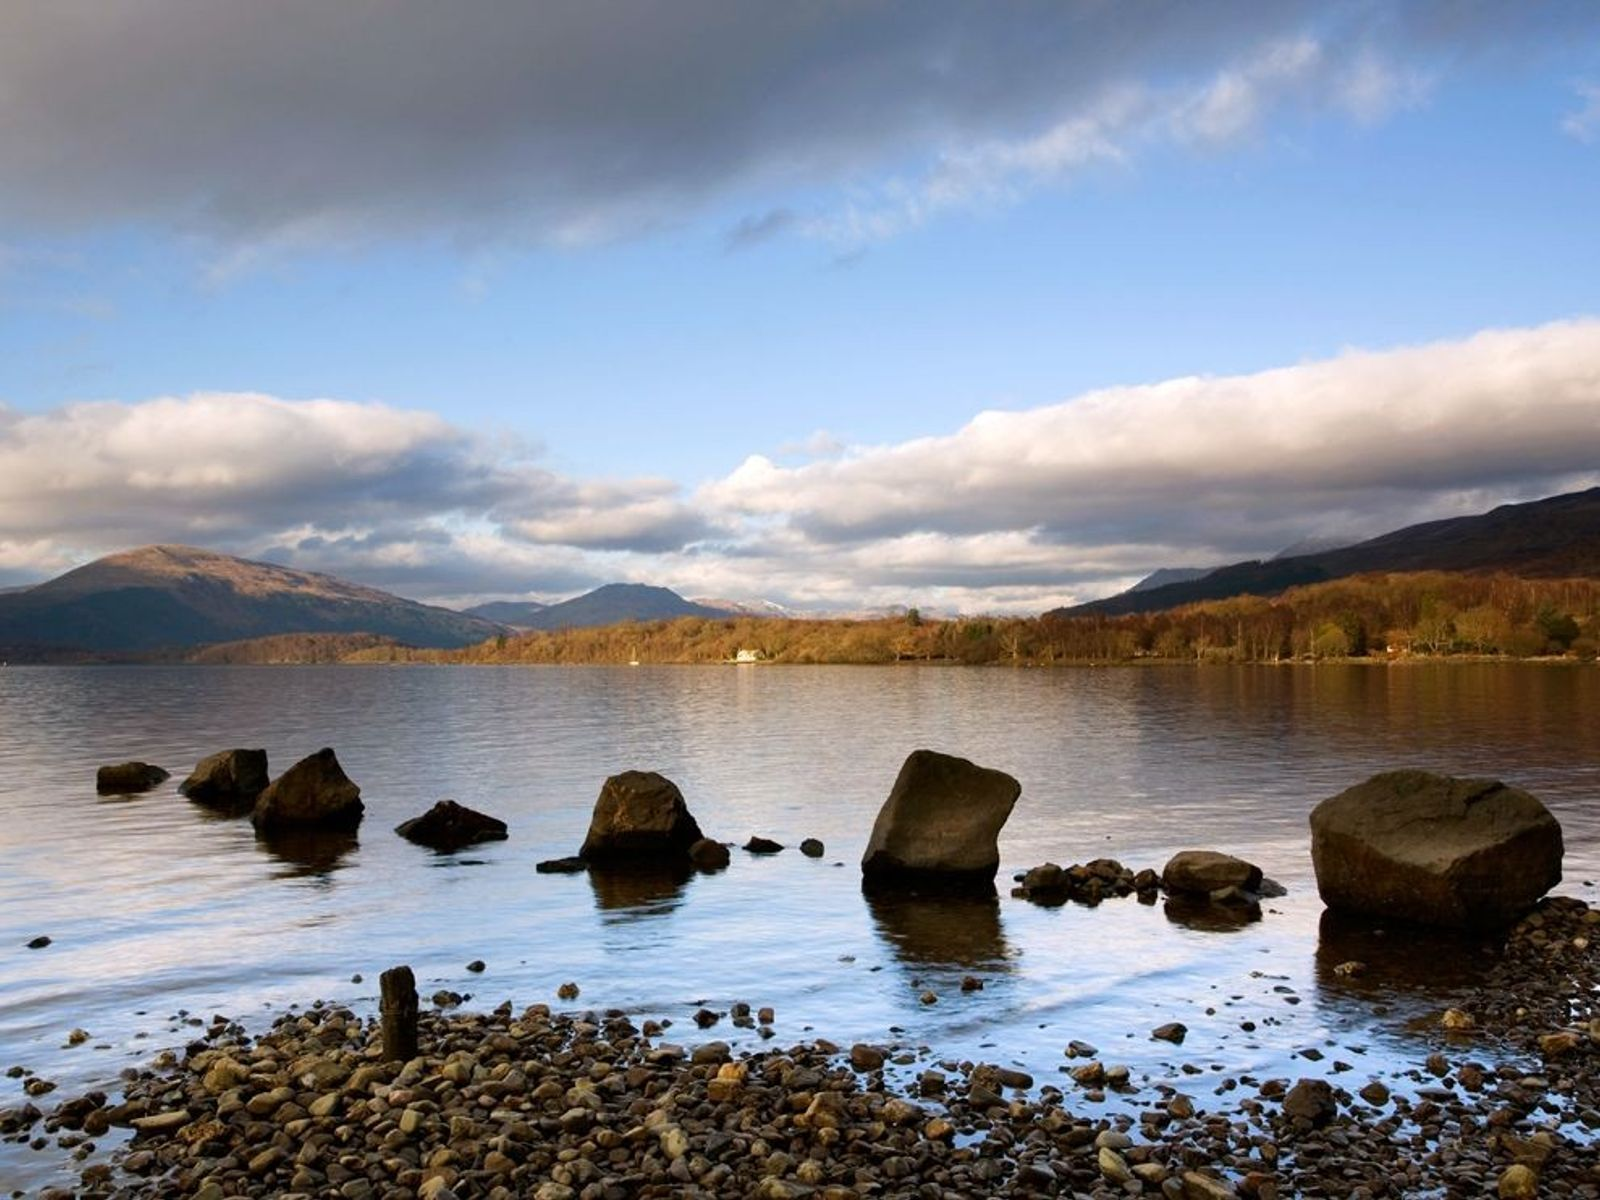 Loch Lomond and the Trossachs National Park, Scotland